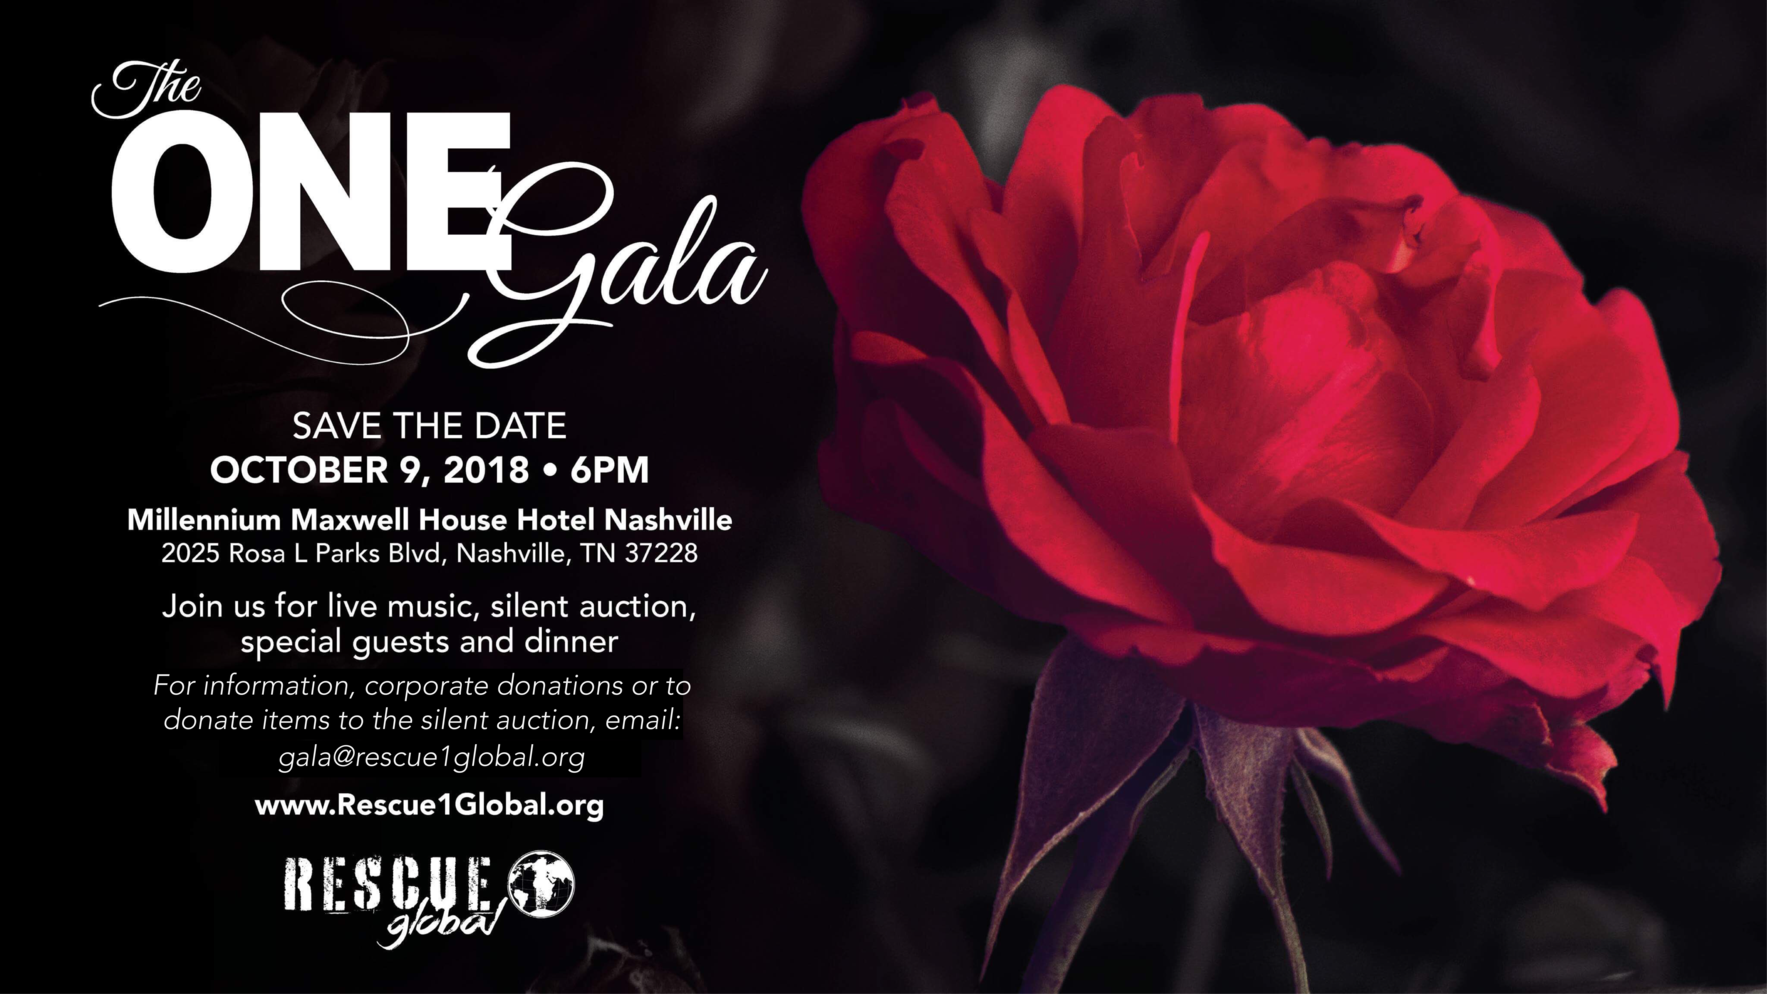 The One Gala-2018 image